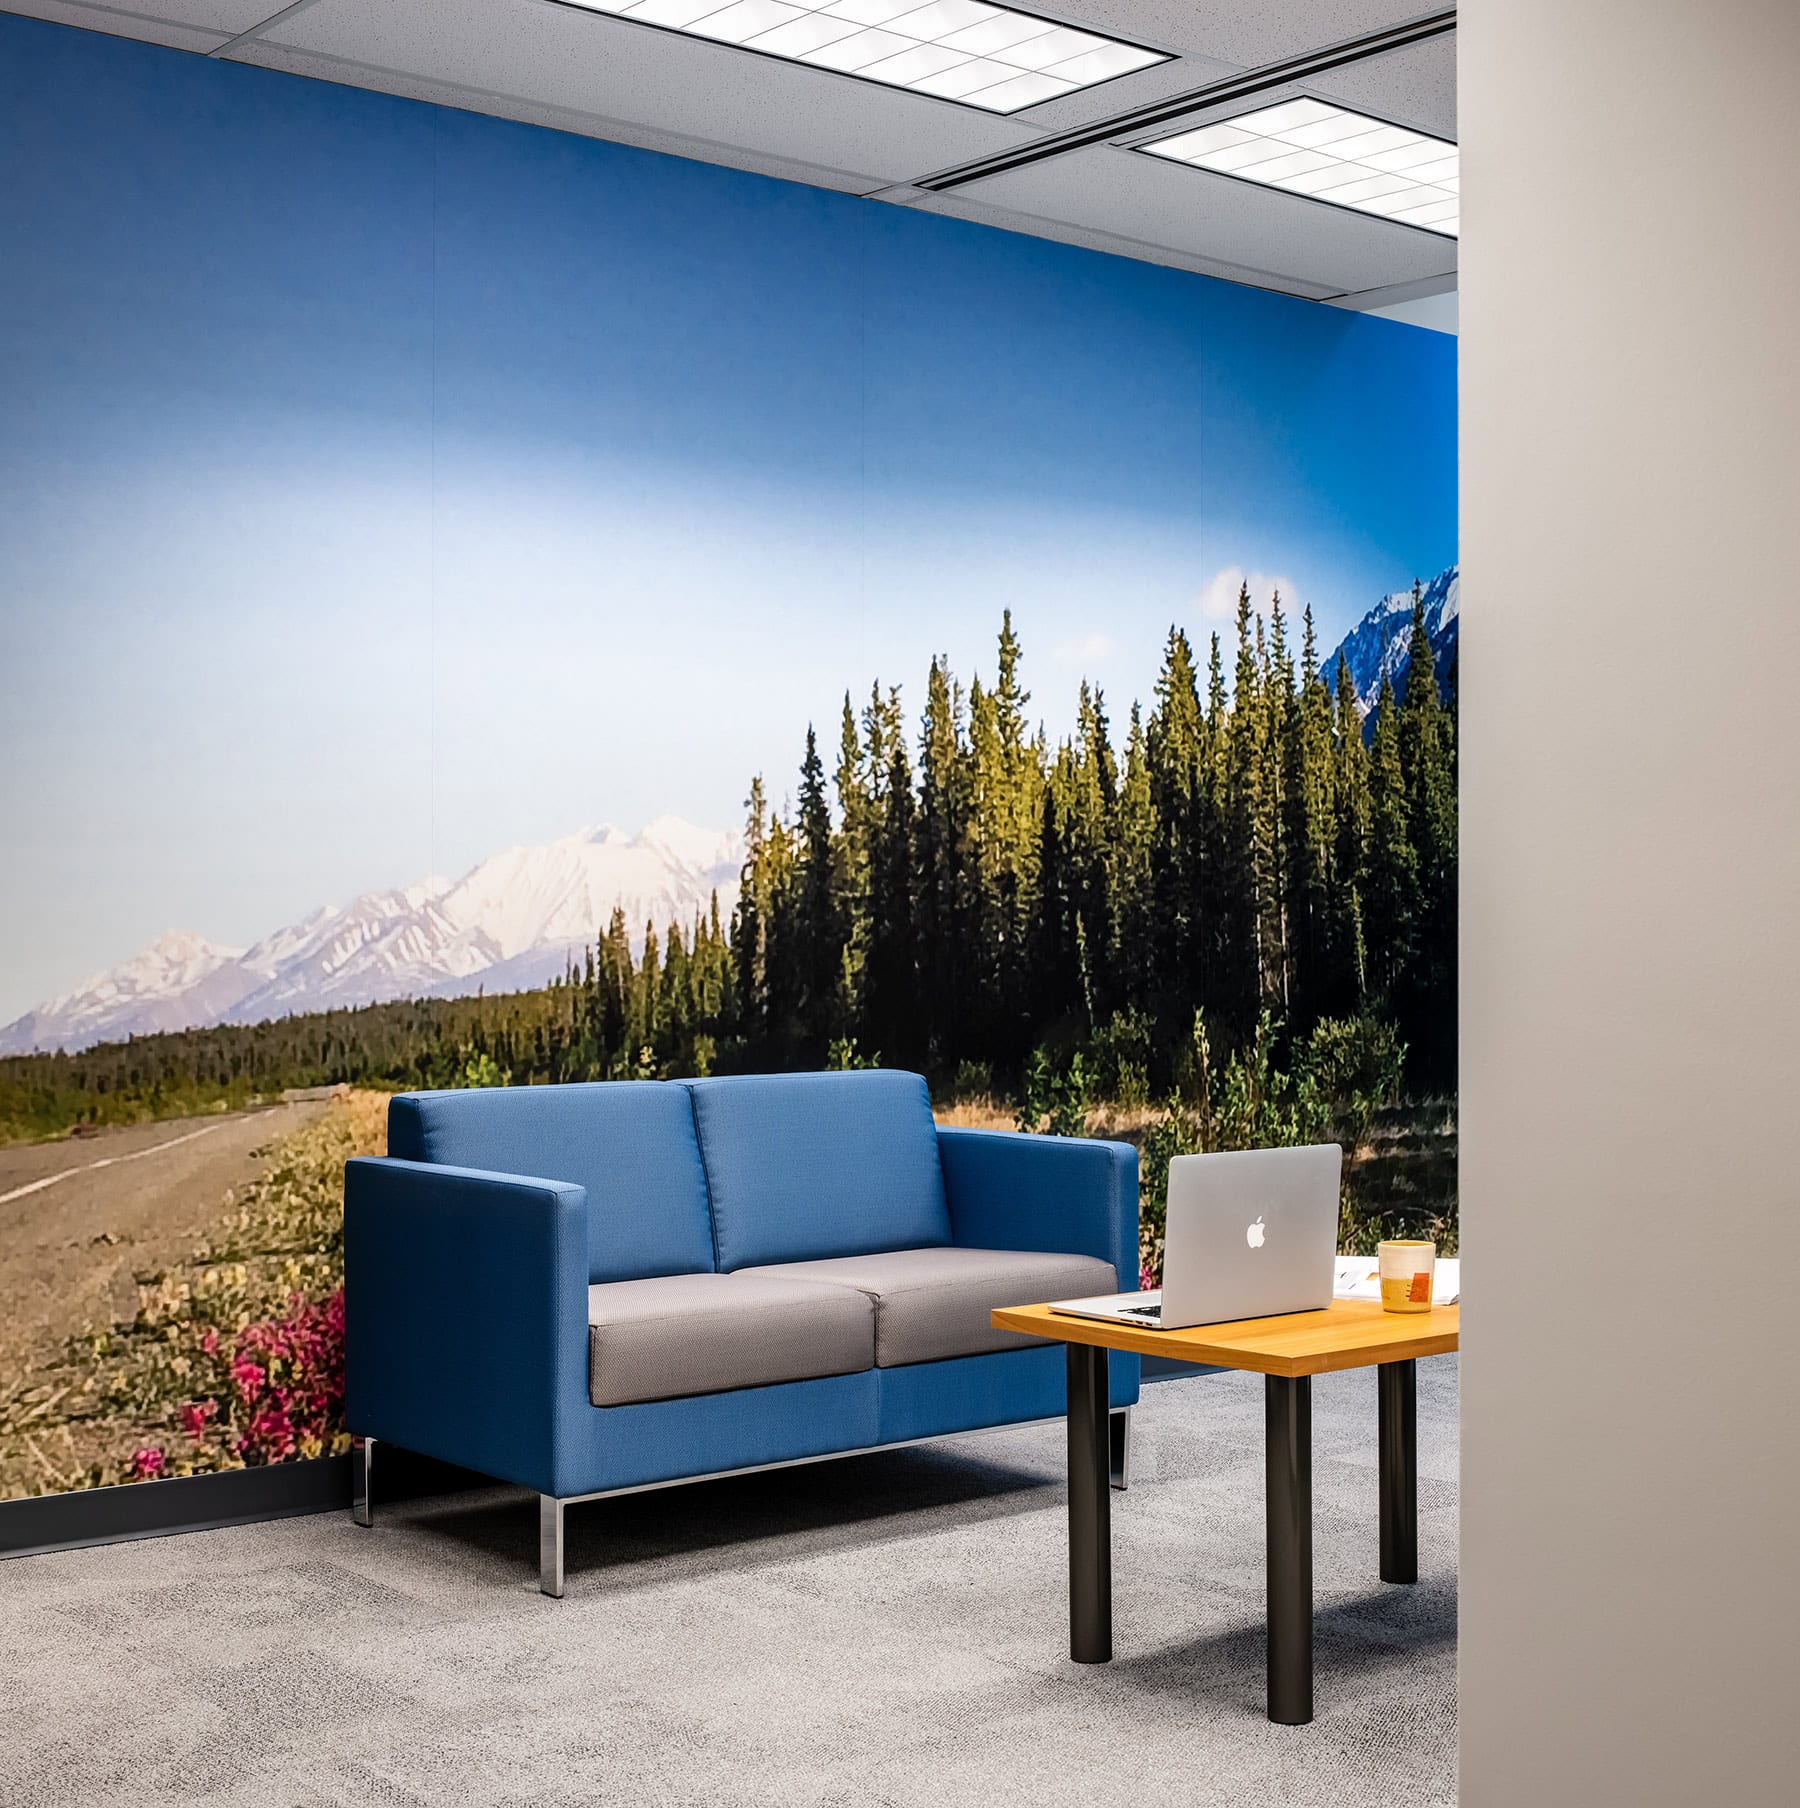 Reception are after an office renovation in Vancouver LEED building